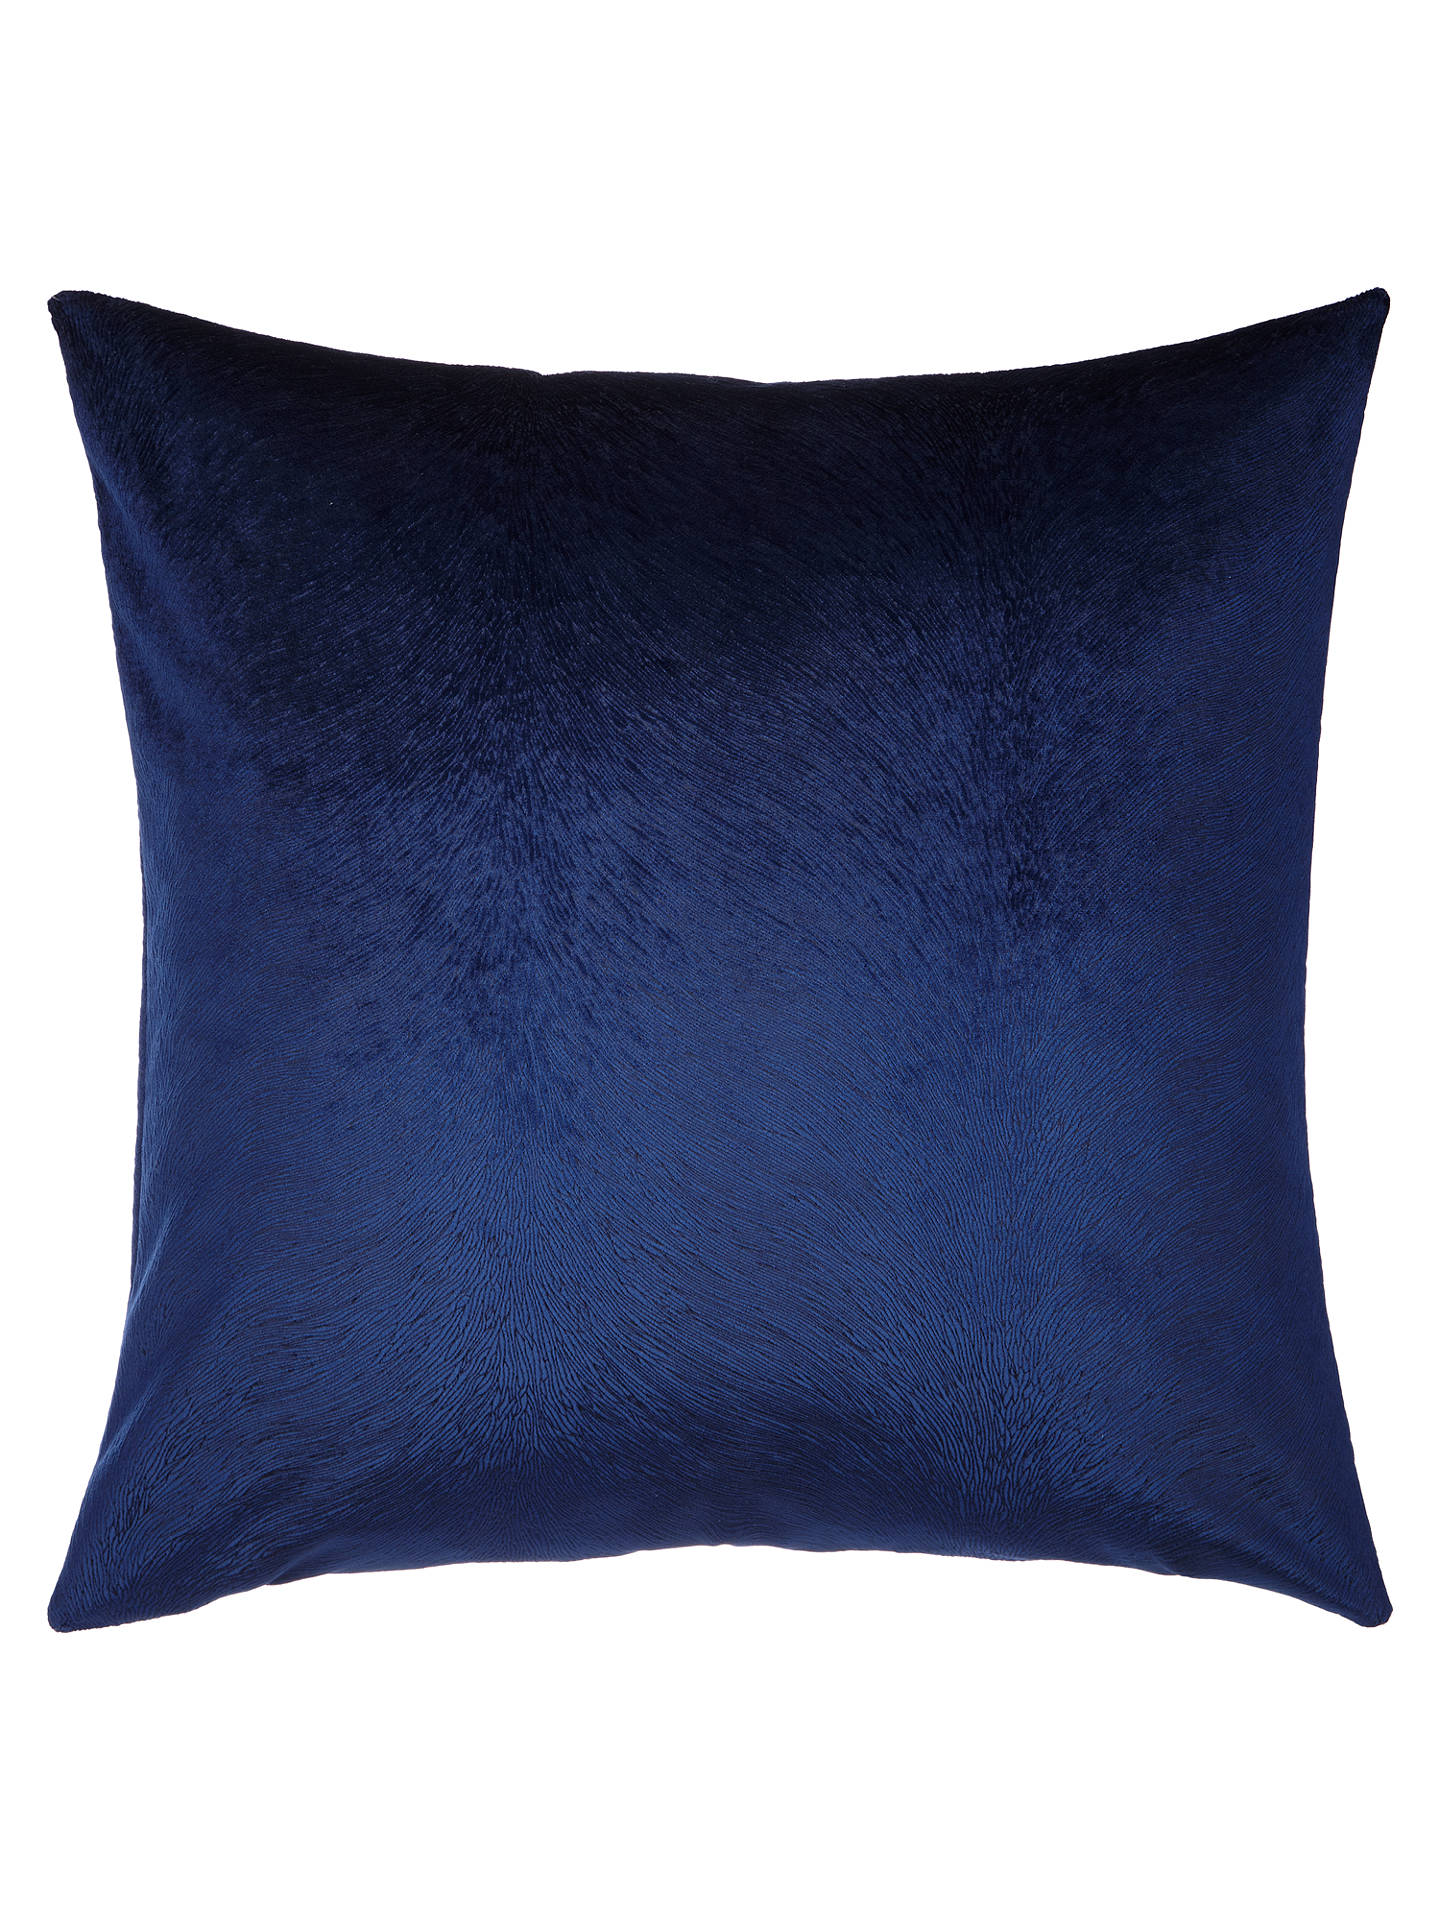 Buy John Lewis & Partners Italian Cut Velvet Square Cushion, Sapphire Blue Online at johnlewis.com